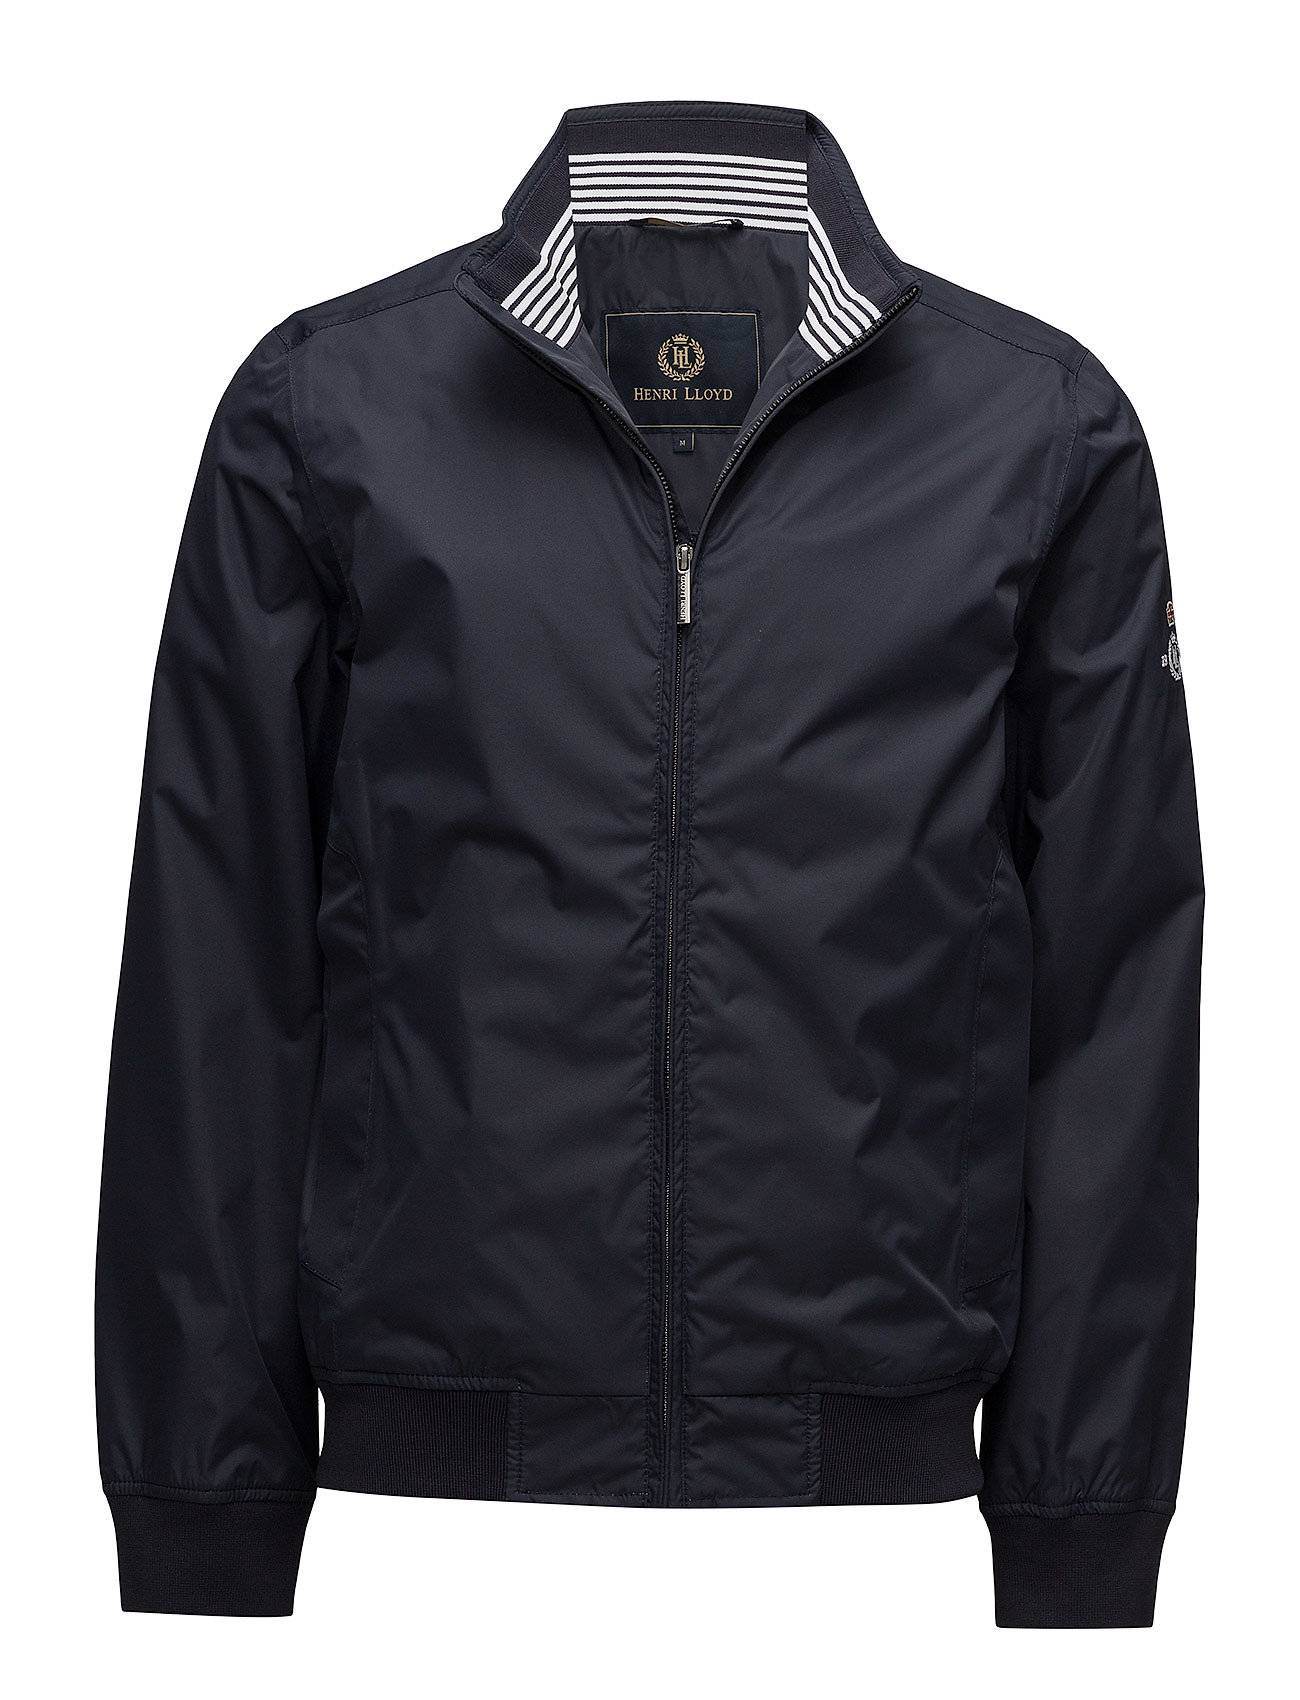 Henri Lloyd Darton Club Tech Bomber Jkt